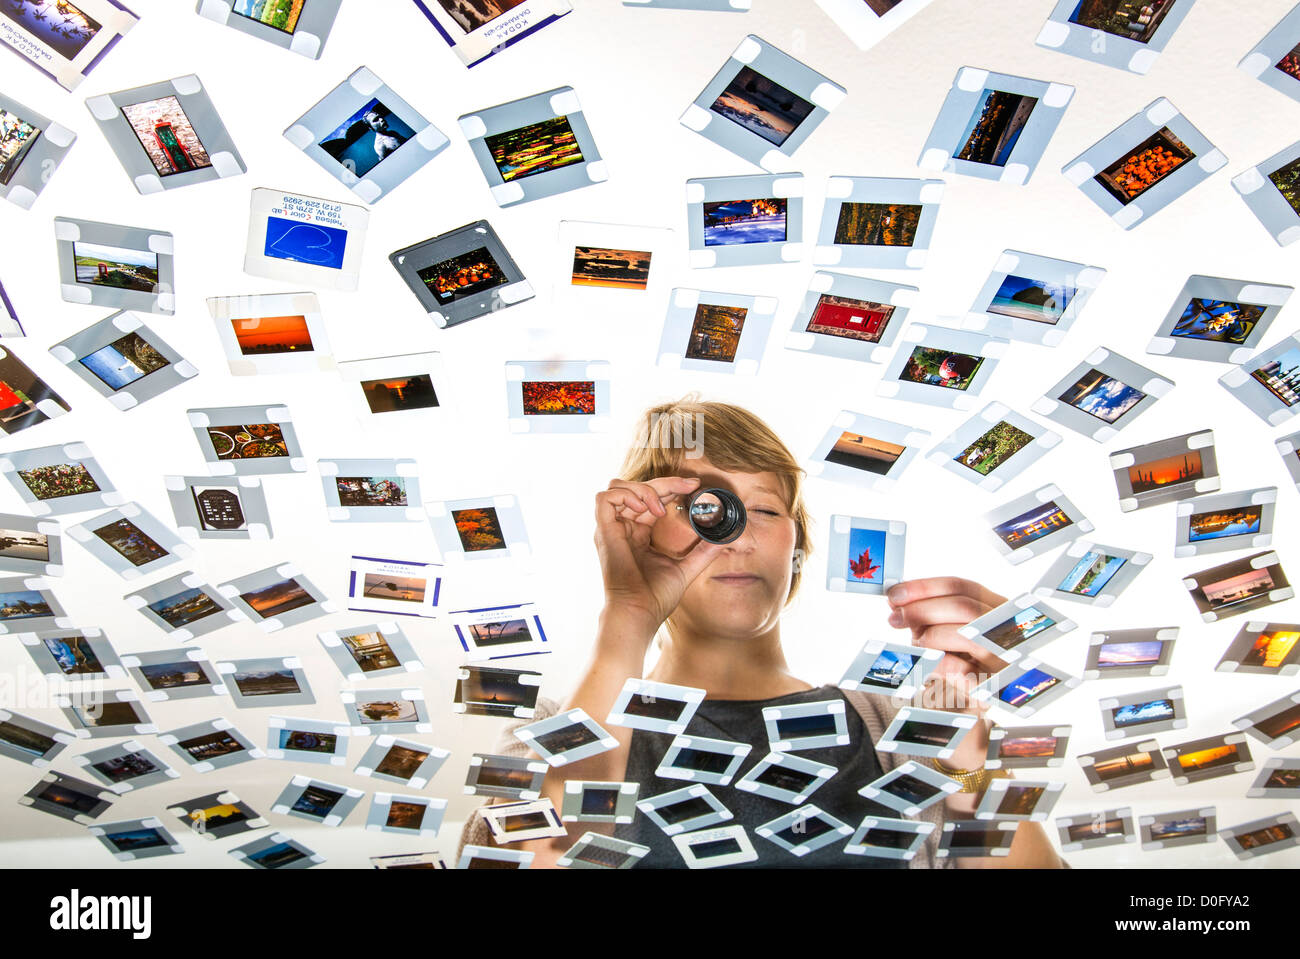 Woman, photo editor,  is looking at slides, photos, at a light table. Picture editing. Analog photography. - Stock Image